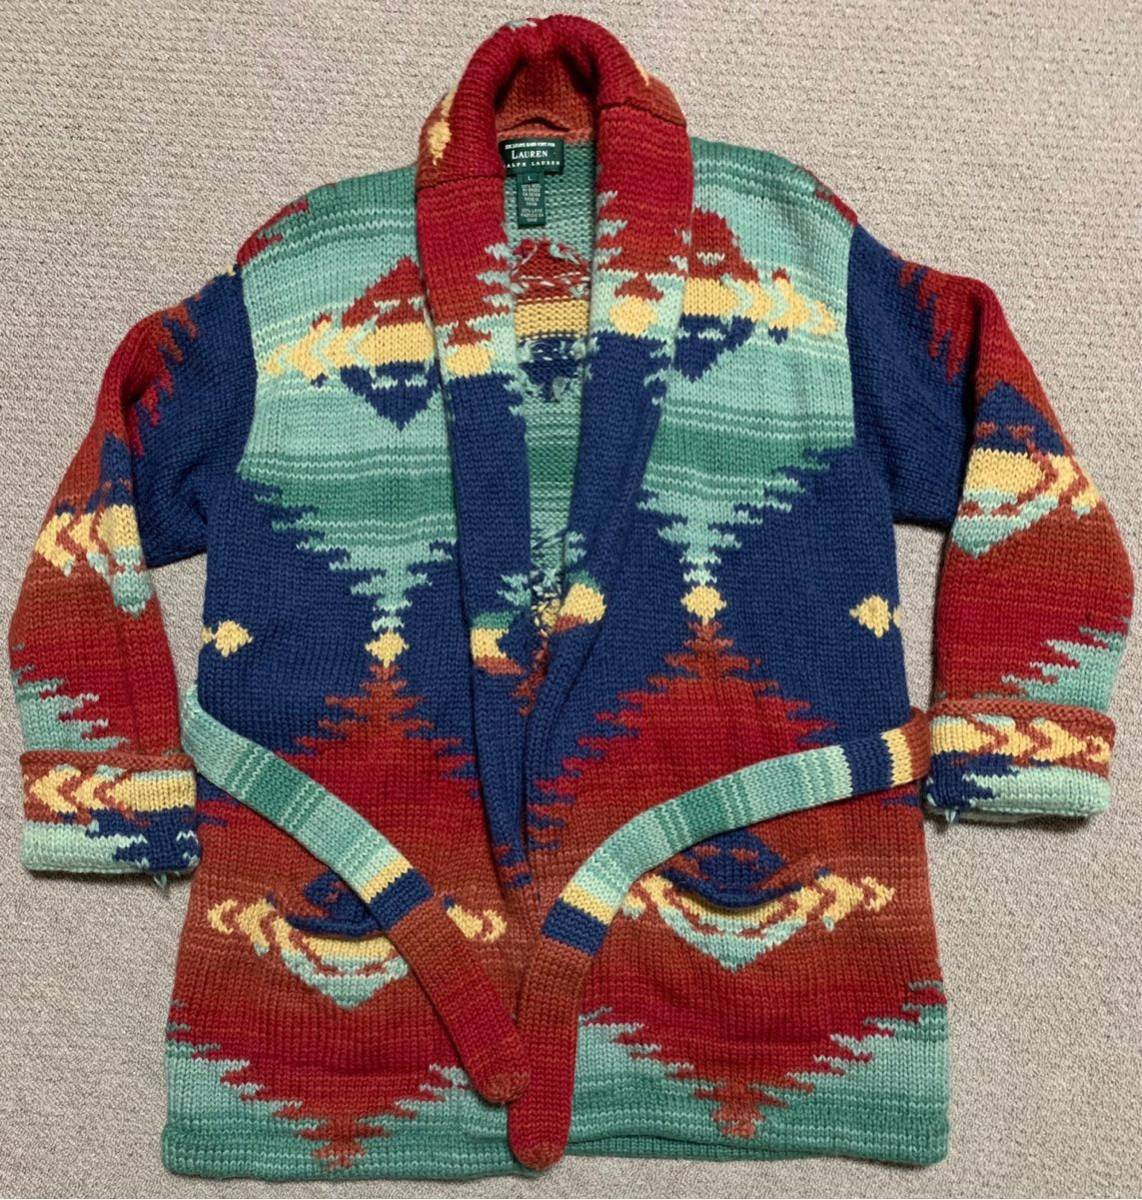 d30bc6990 Vintage Ralph Lauren neitib hand knitted cardigan RRL Polo Country indian  Navajo gaunPOLO RL 92 93 Conti .